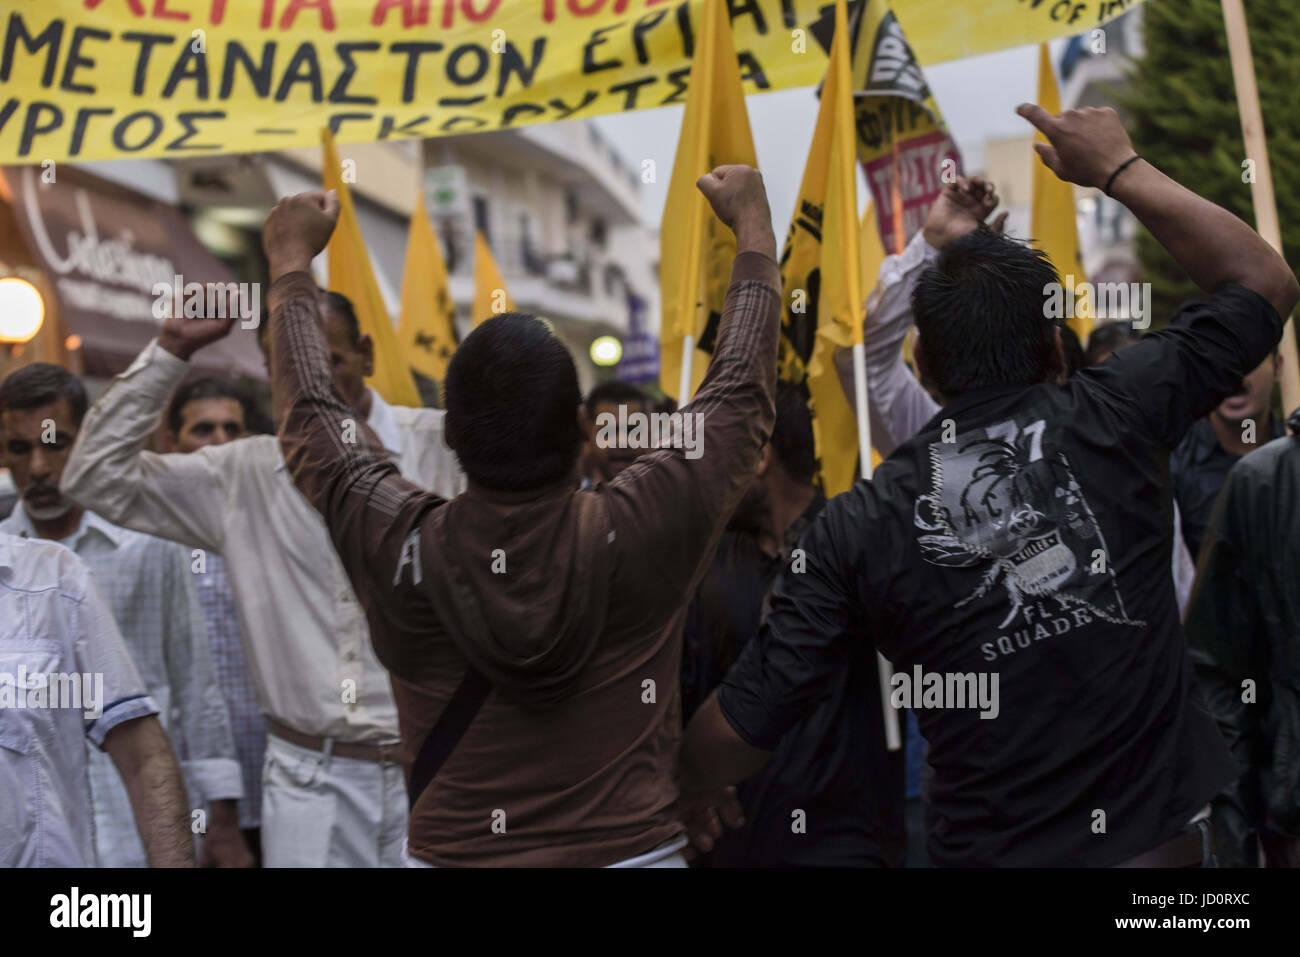 Athens, Greece. 17th June, 2017. Leftists, anarchists, anti-racism organization members and migrants march in the Stock Photo